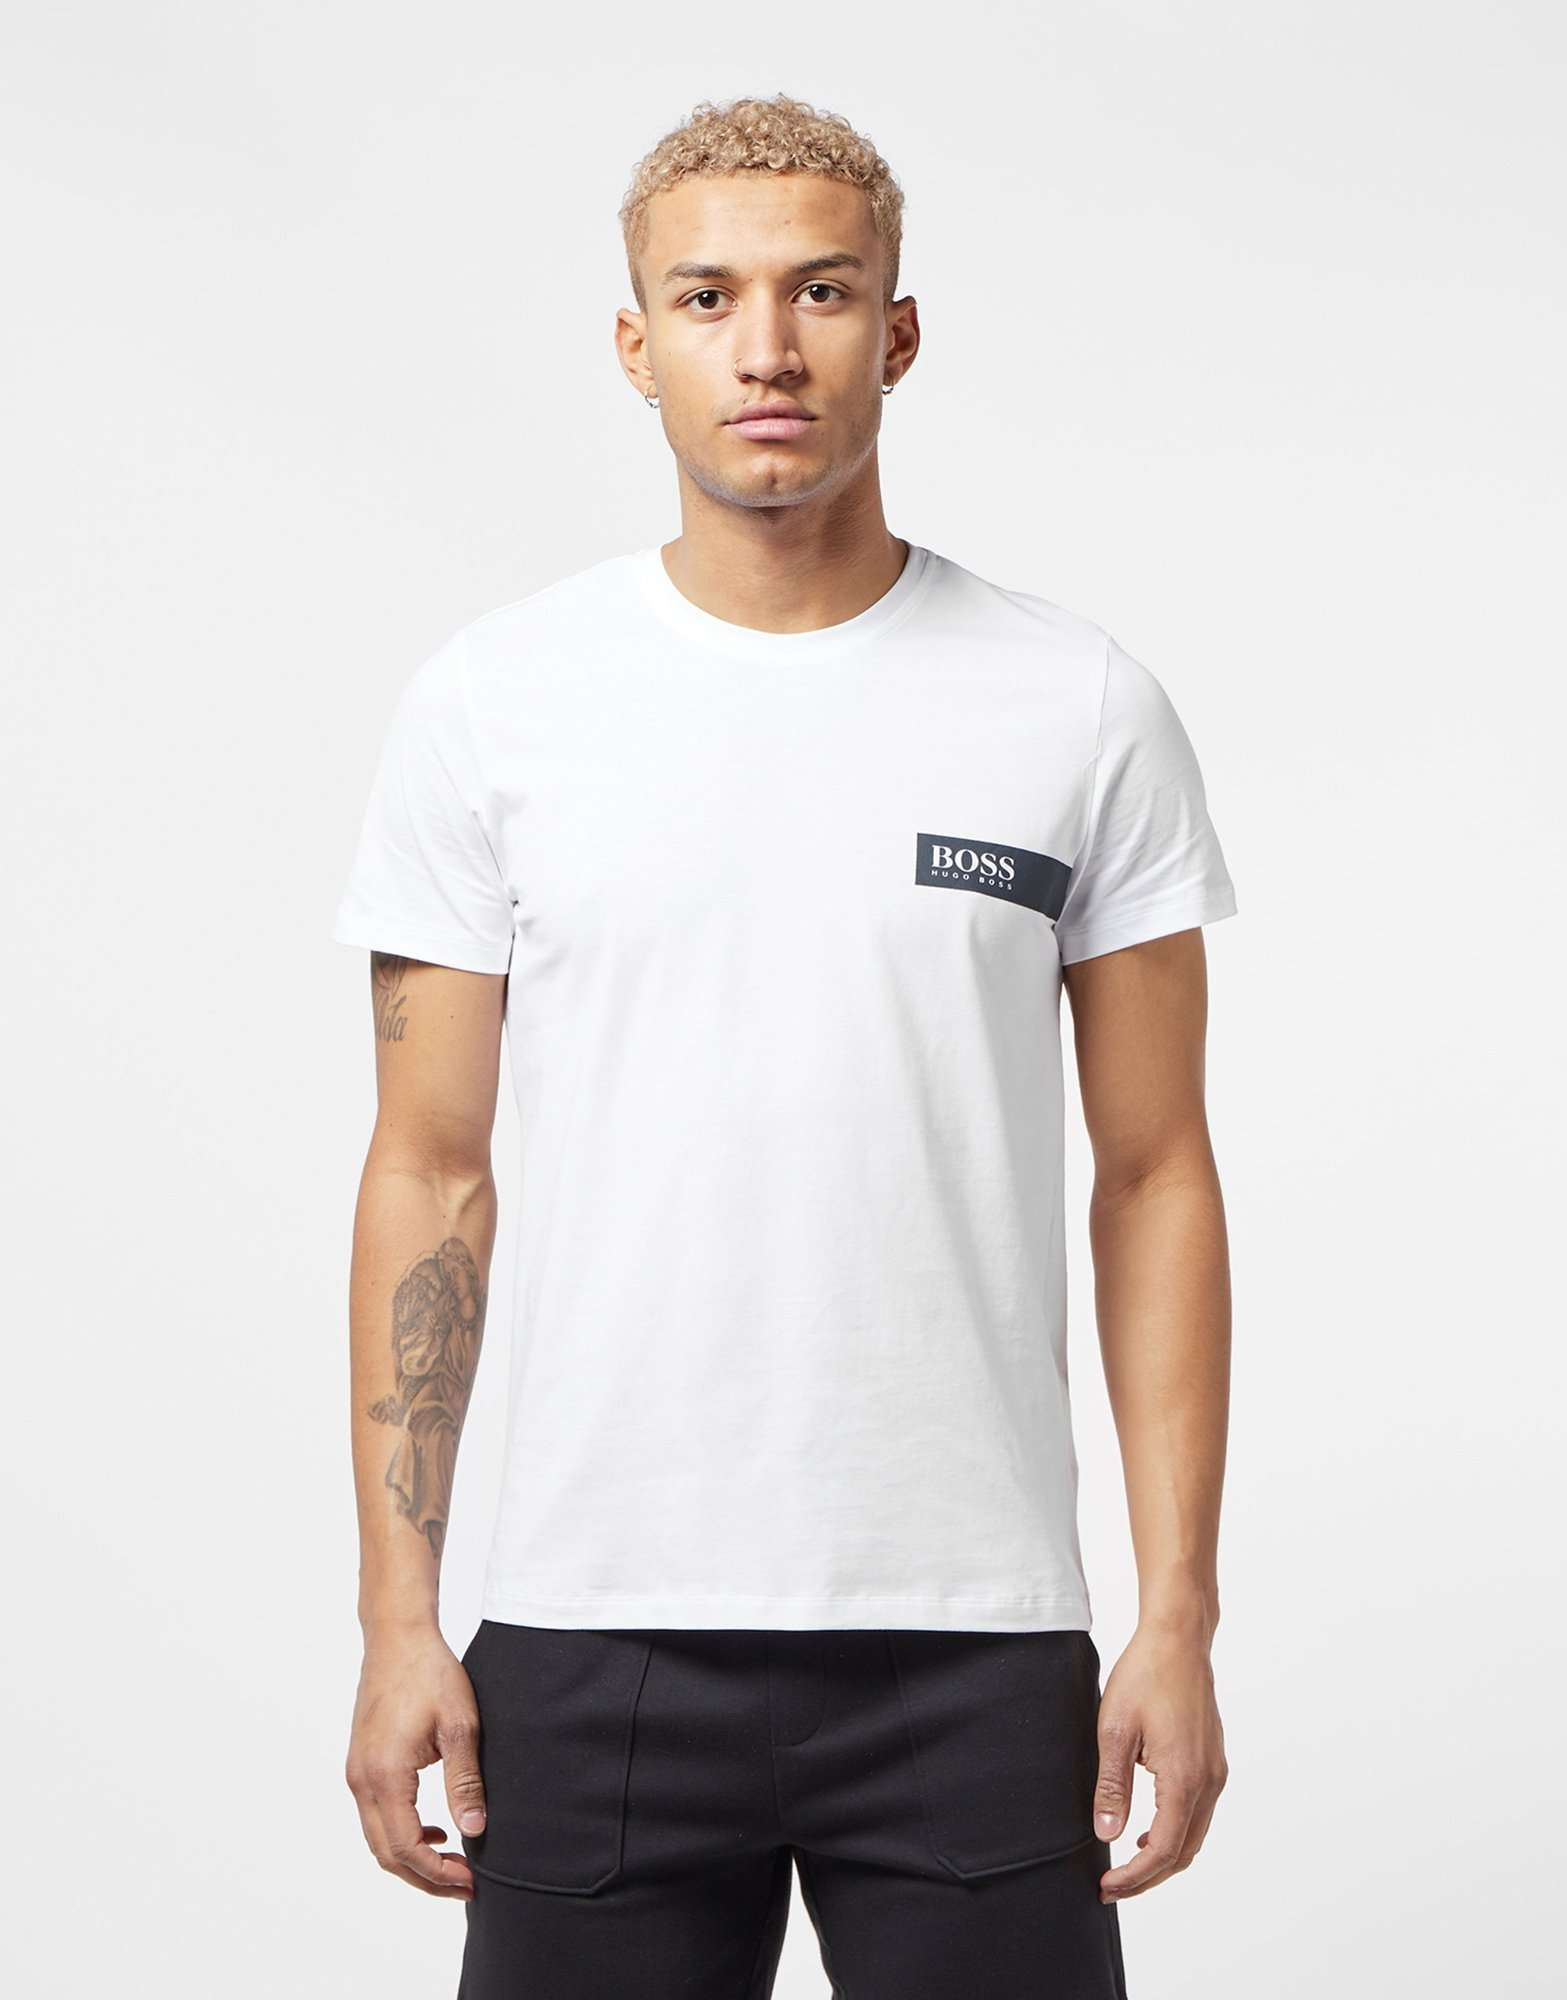 BOSS Chest Block Short Sleeve T-Shirt